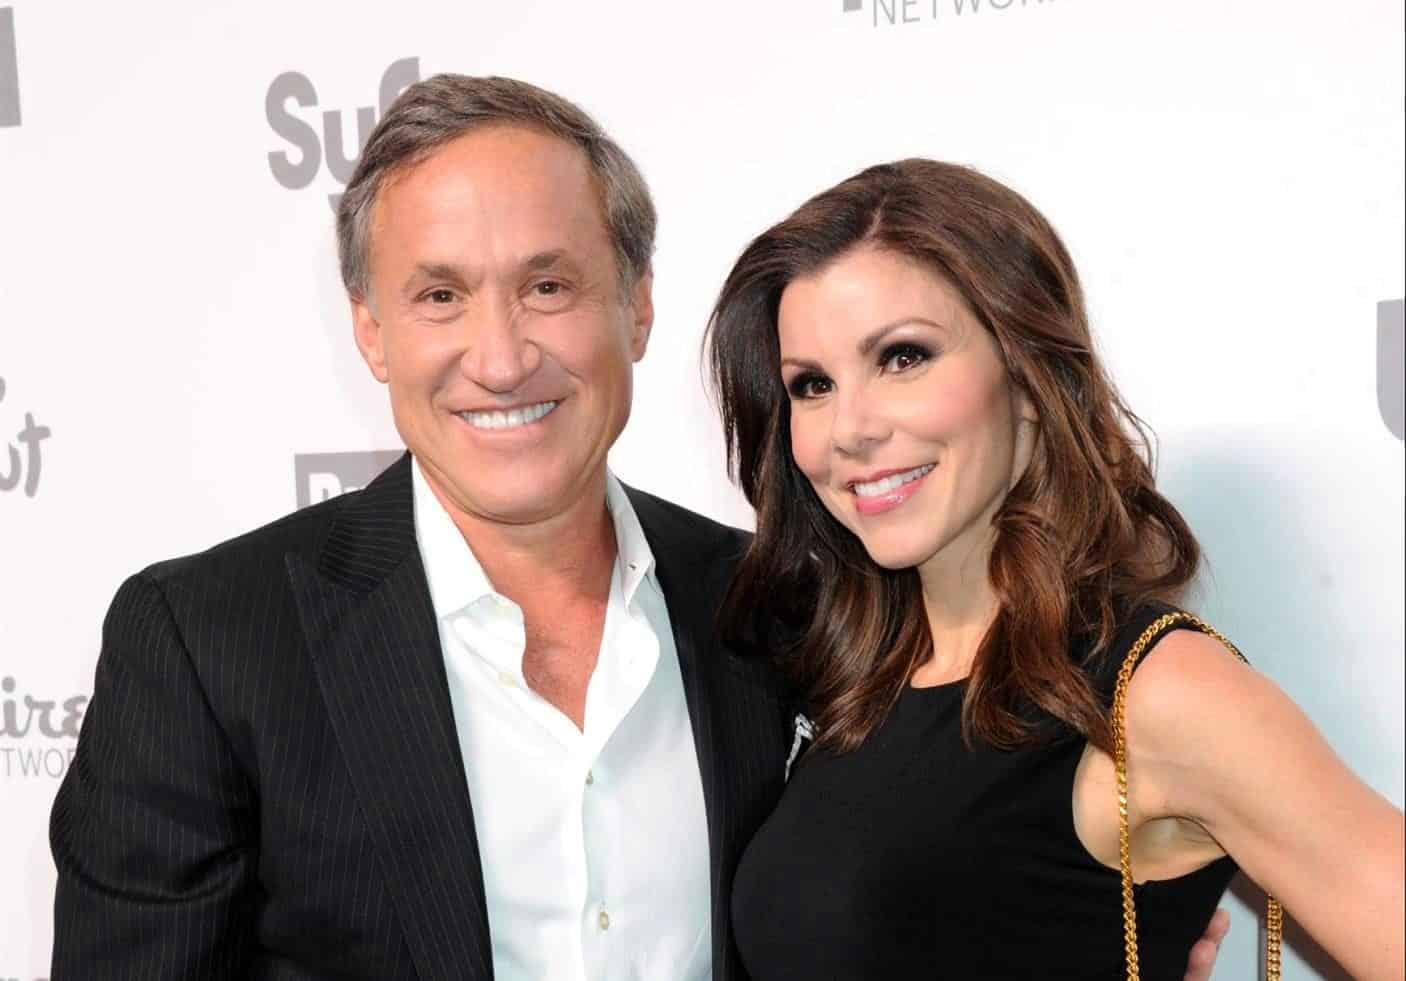 Dr. Terry Dubrow Accused of Botched surgery in Lawsuit